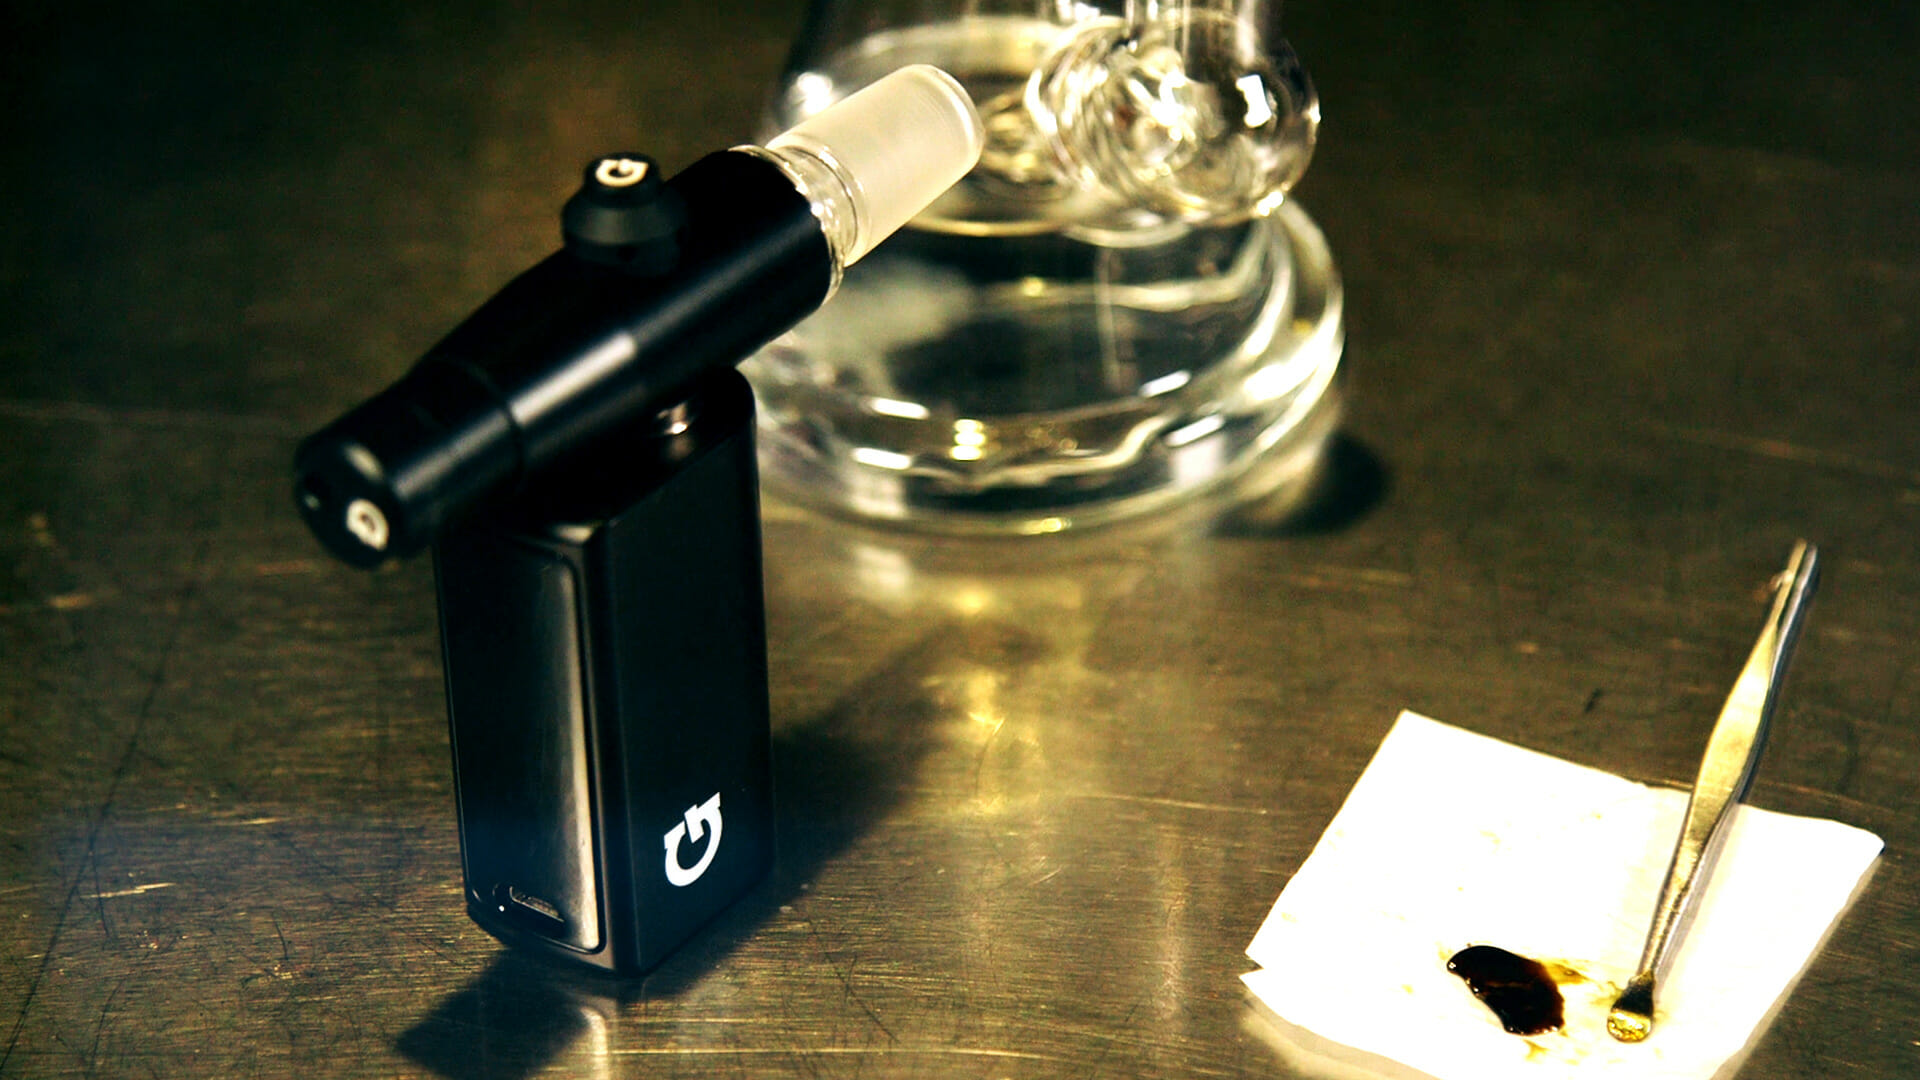 g-pen-connect-concentrates-vaporizer-thumbnail-1